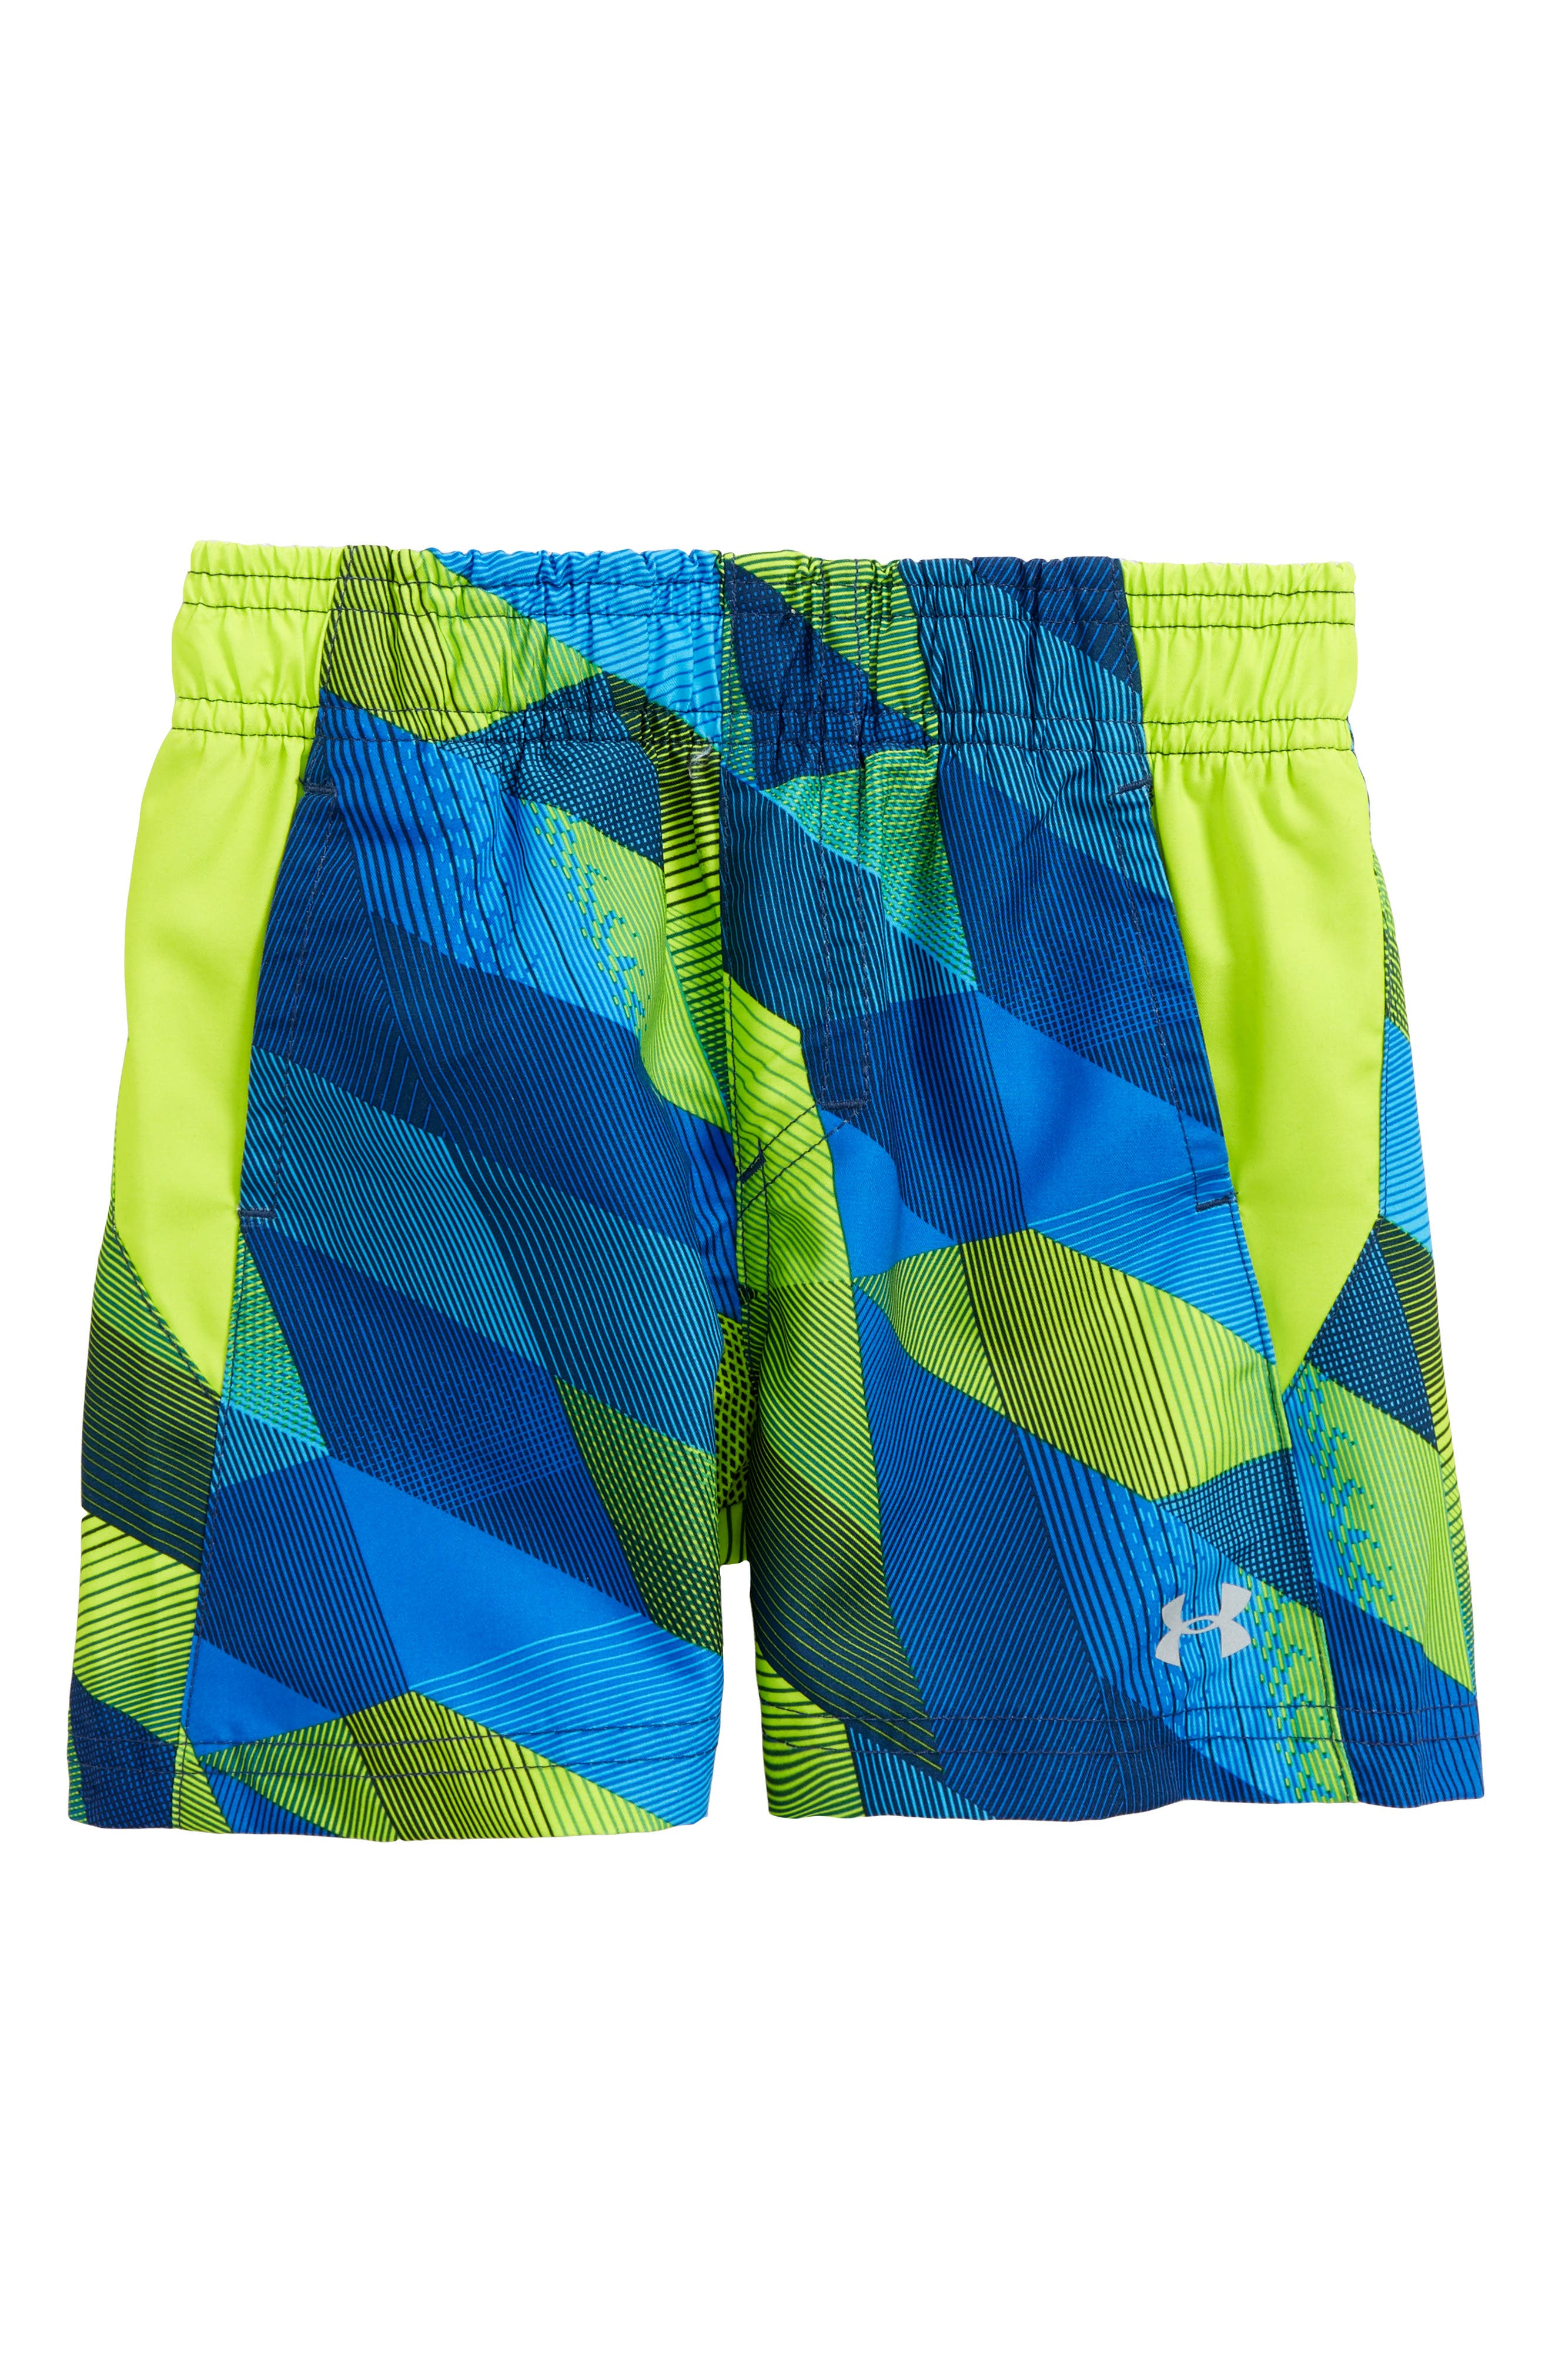 Electric Field Volley Swim Trunks,                             Main thumbnail 1, color,                             Blue/ Yellow